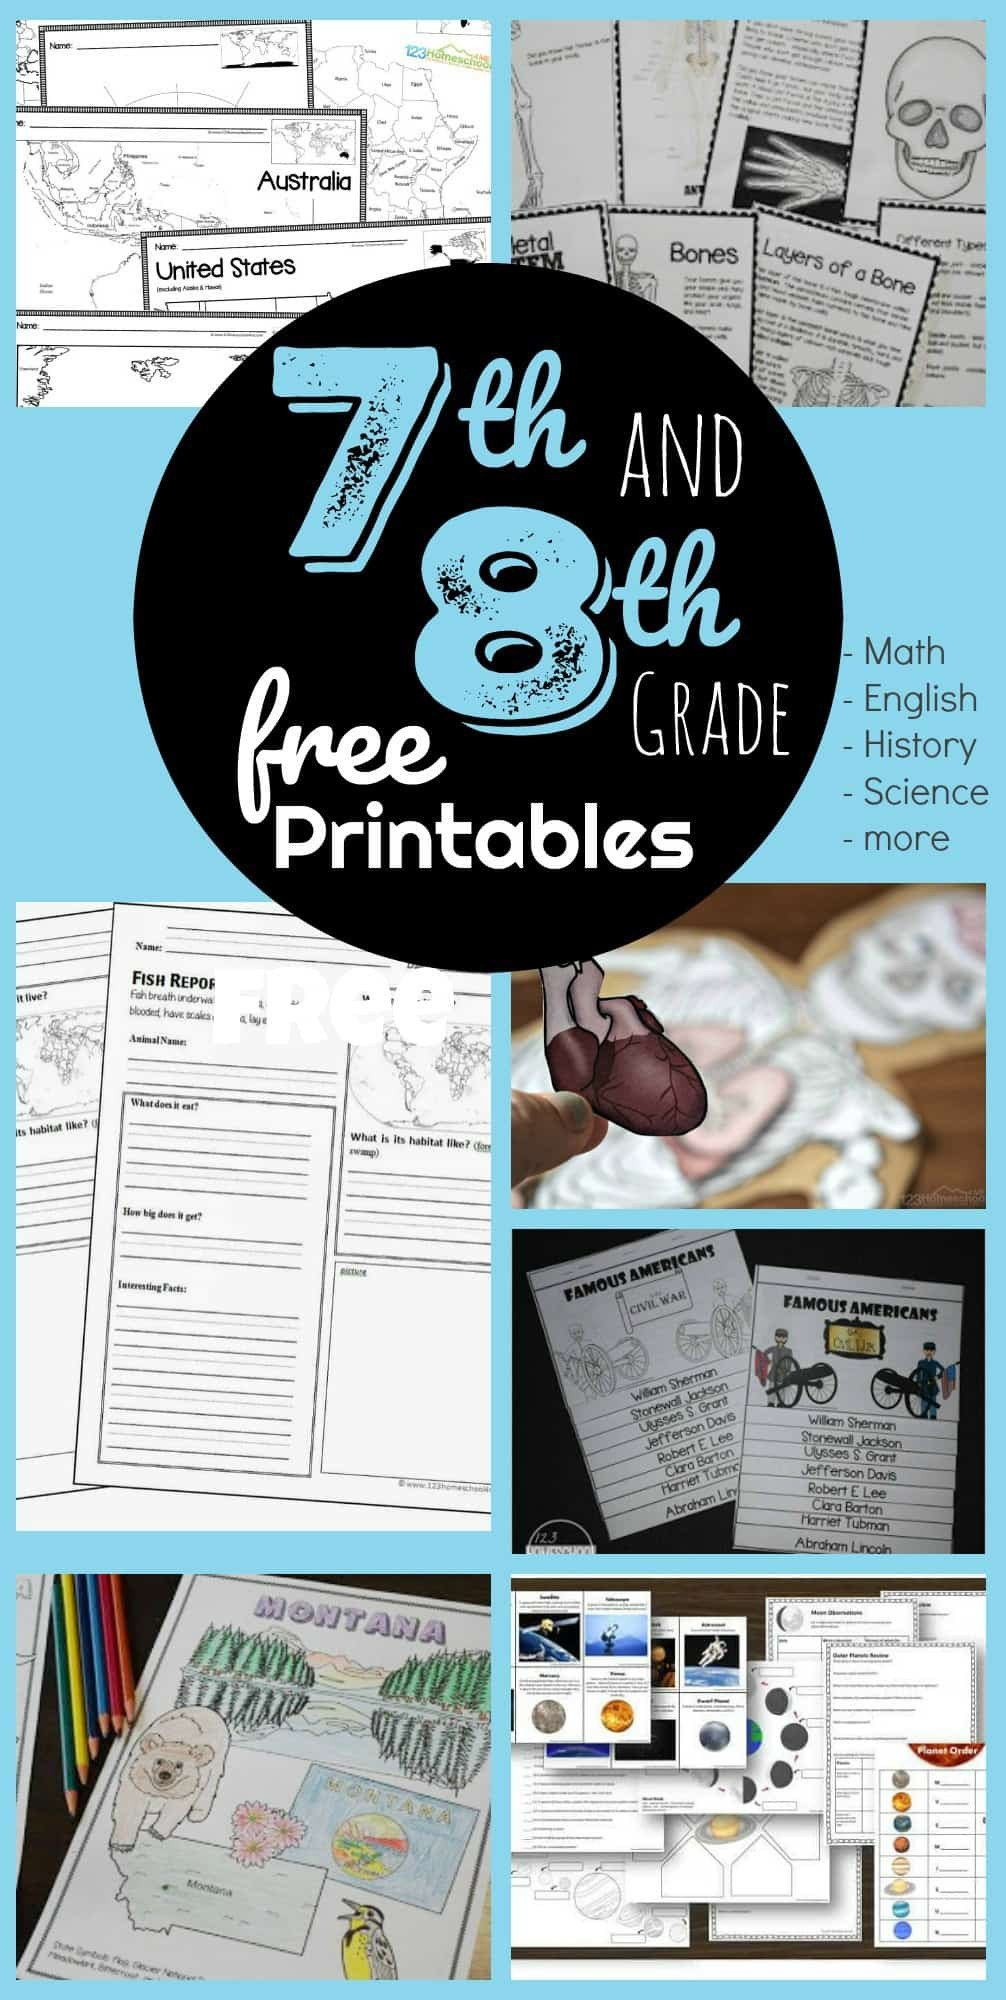 7th Grade Science Worksheets Free 7th & 8th Grade Worksheets